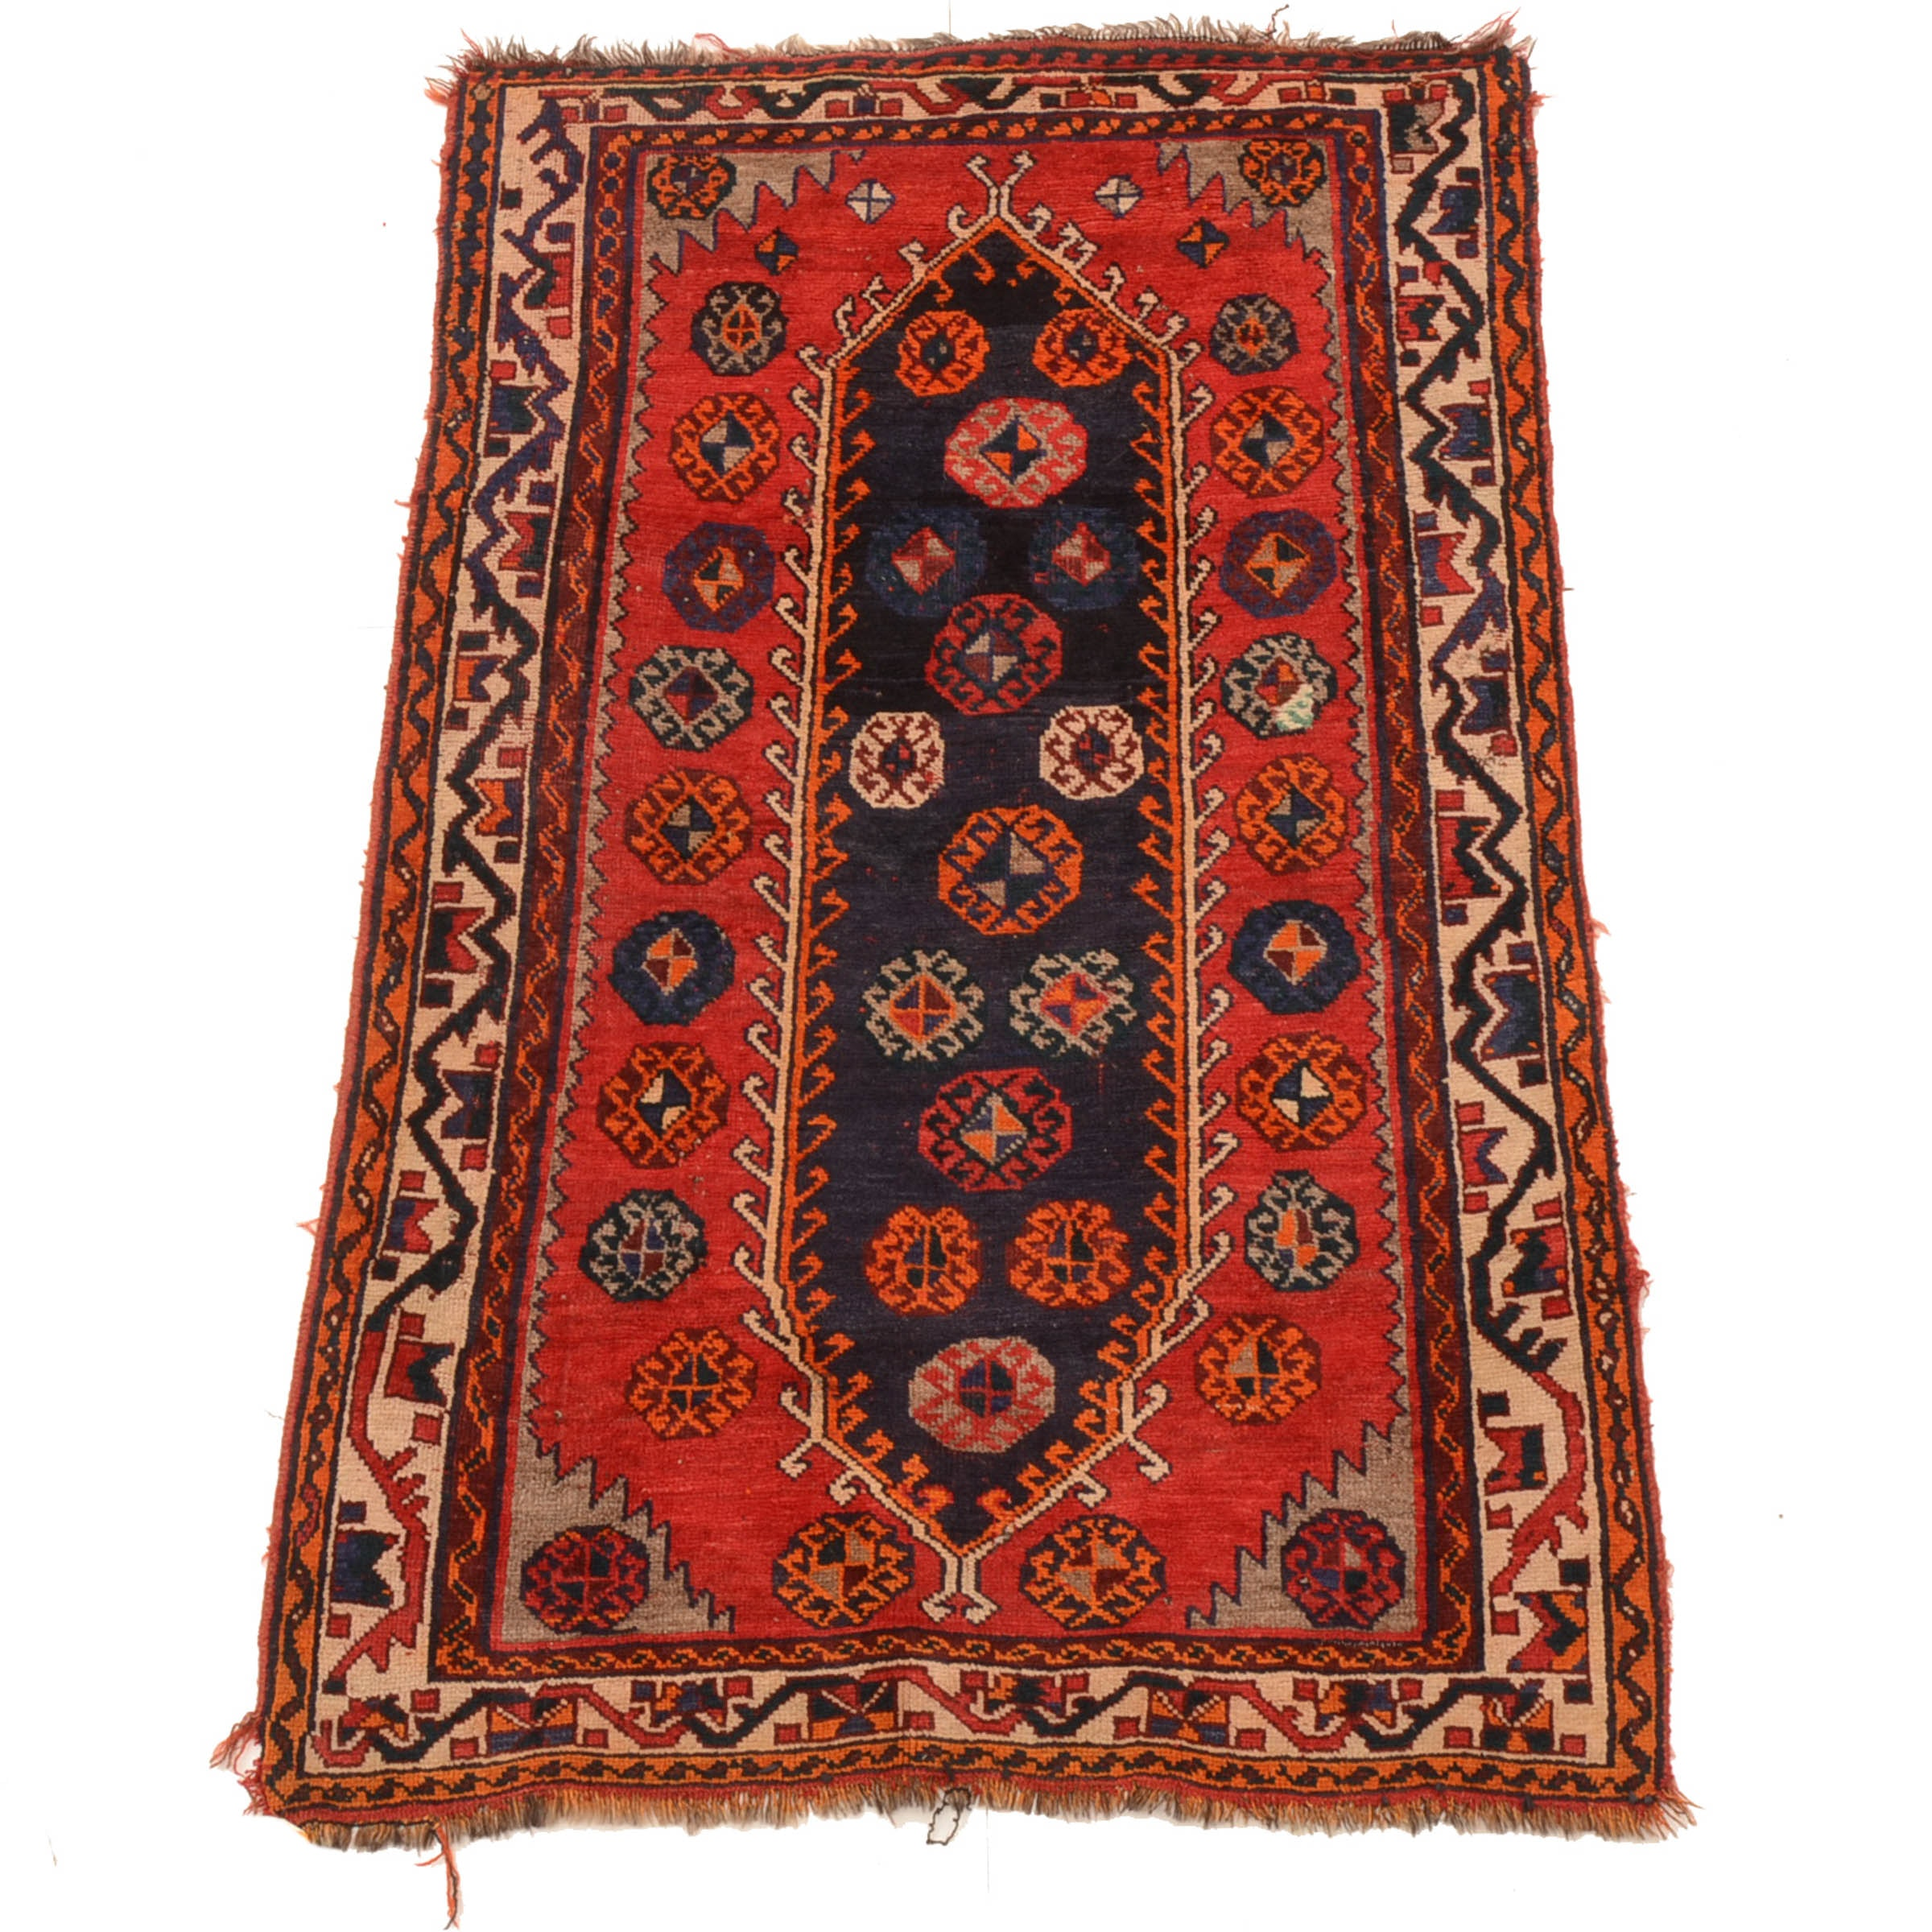 Vintage Hand-Knotted Anatolian Wool Area Rug